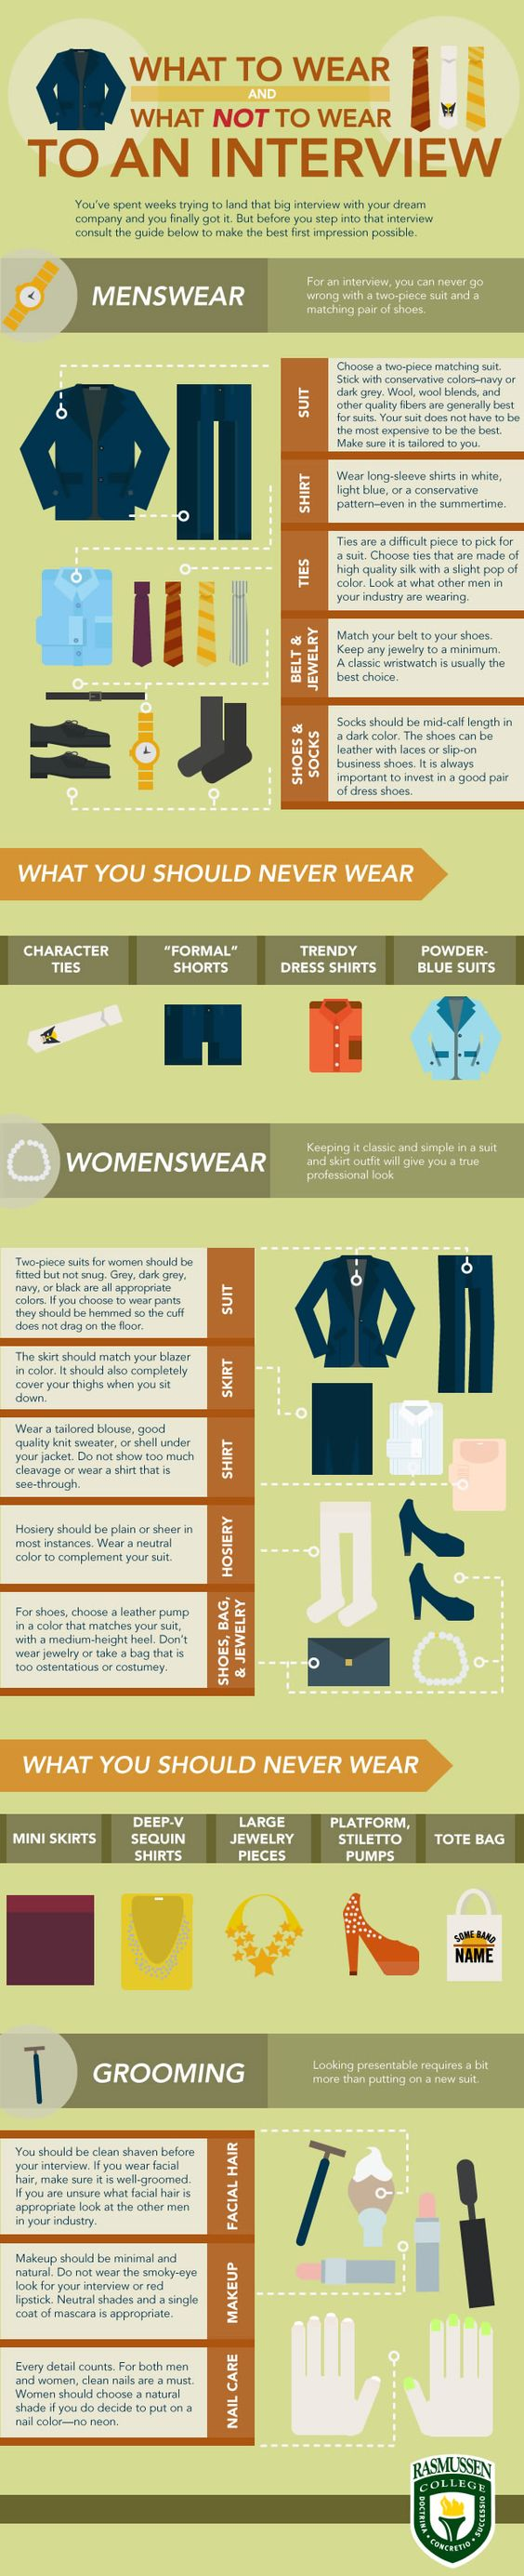 What to Wear to a Job Interview by Come Recommended